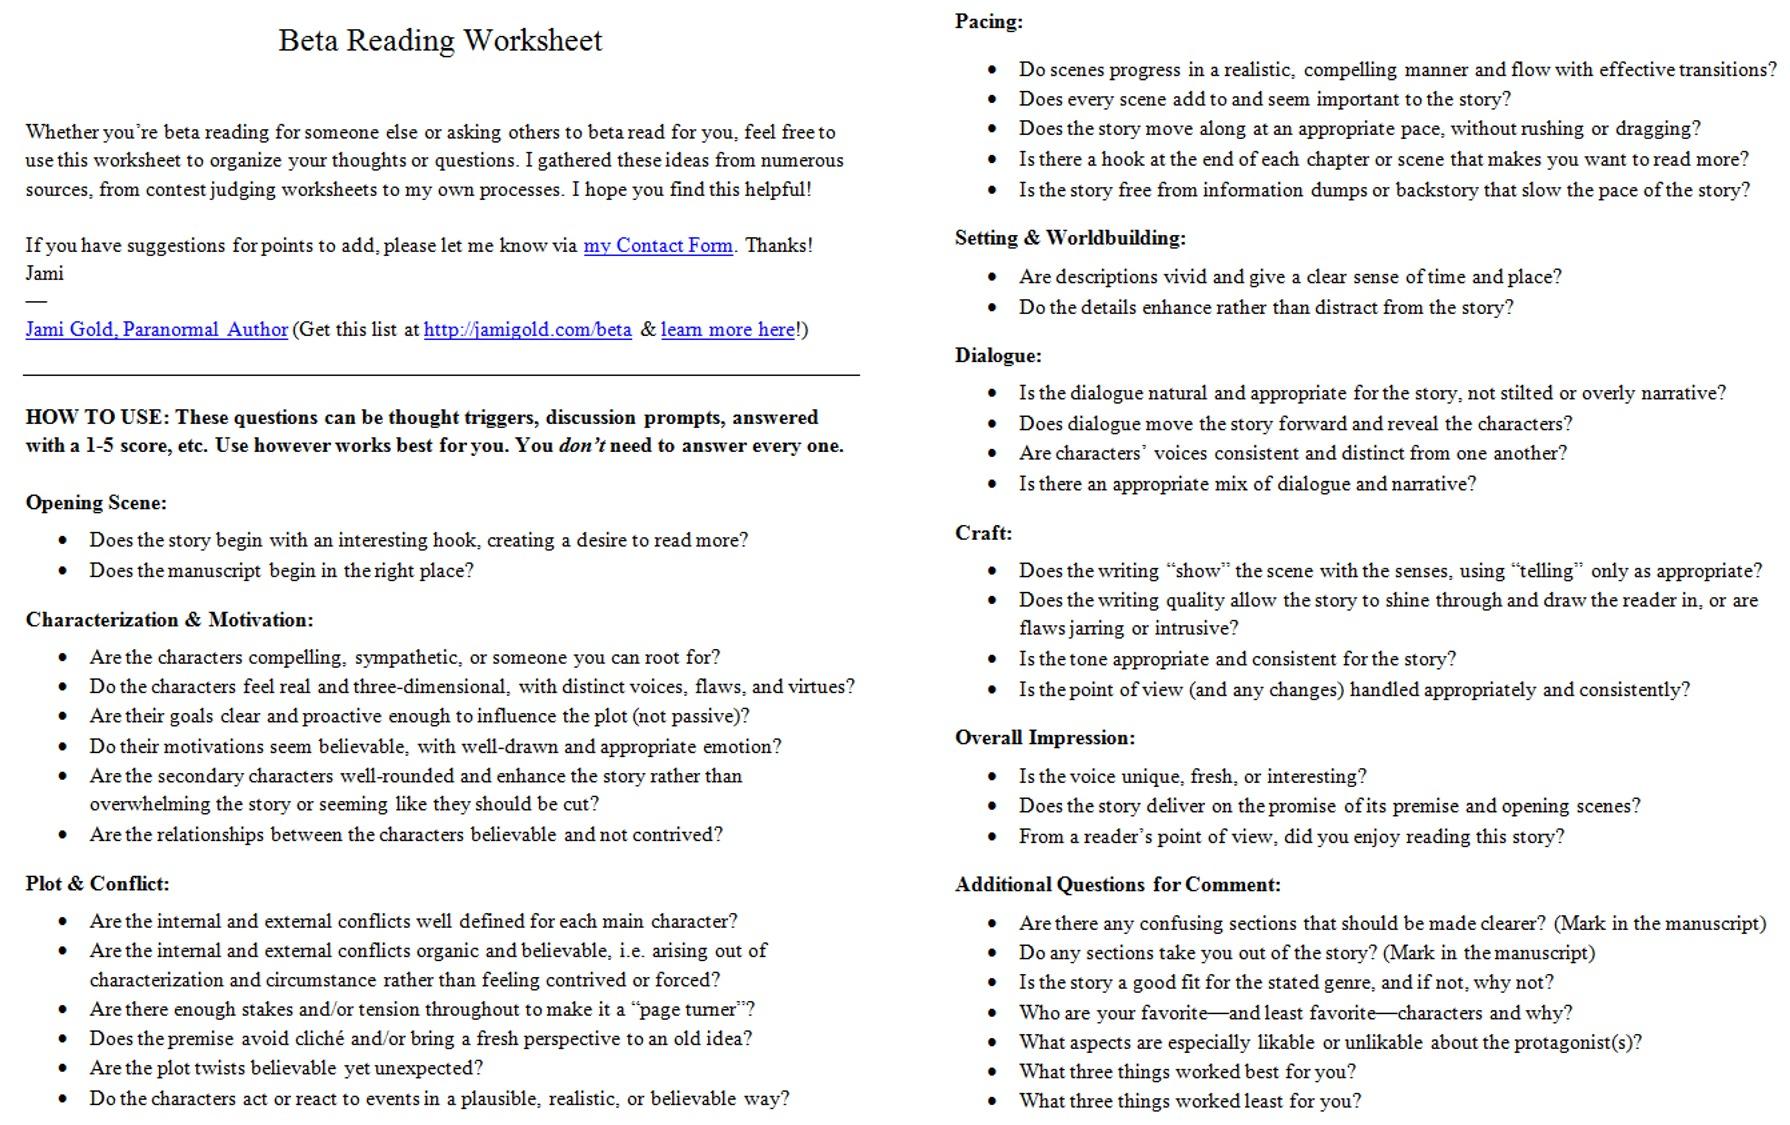 Proatmealus  Pretty Worksheets For Writers  Jami Gold Paranormal Author With Lovely Screen Shot Of The Twopage Beta Reading Worksheet With Amusing Scissor Worksheets Also Groundhog Day Comprehension Worksheets In Addition Kumon Multiplication Worksheets And Action Verb Worksheets Nd Grade As Well As Tenths And Hundredths Worksheets Grade  Additionally Maths Pyramid Worksheet From Jamigoldcom With Proatmealus  Lovely Worksheets For Writers  Jami Gold Paranormal Author With Amusing Screen Shot Of The Twopage Beta Reading Worksheet And Pretty Scissor Worksheets Also Groundhog Day Comprehension Worksheets In Addition Kumon Multiplication Worksheets From Jamigoldcom